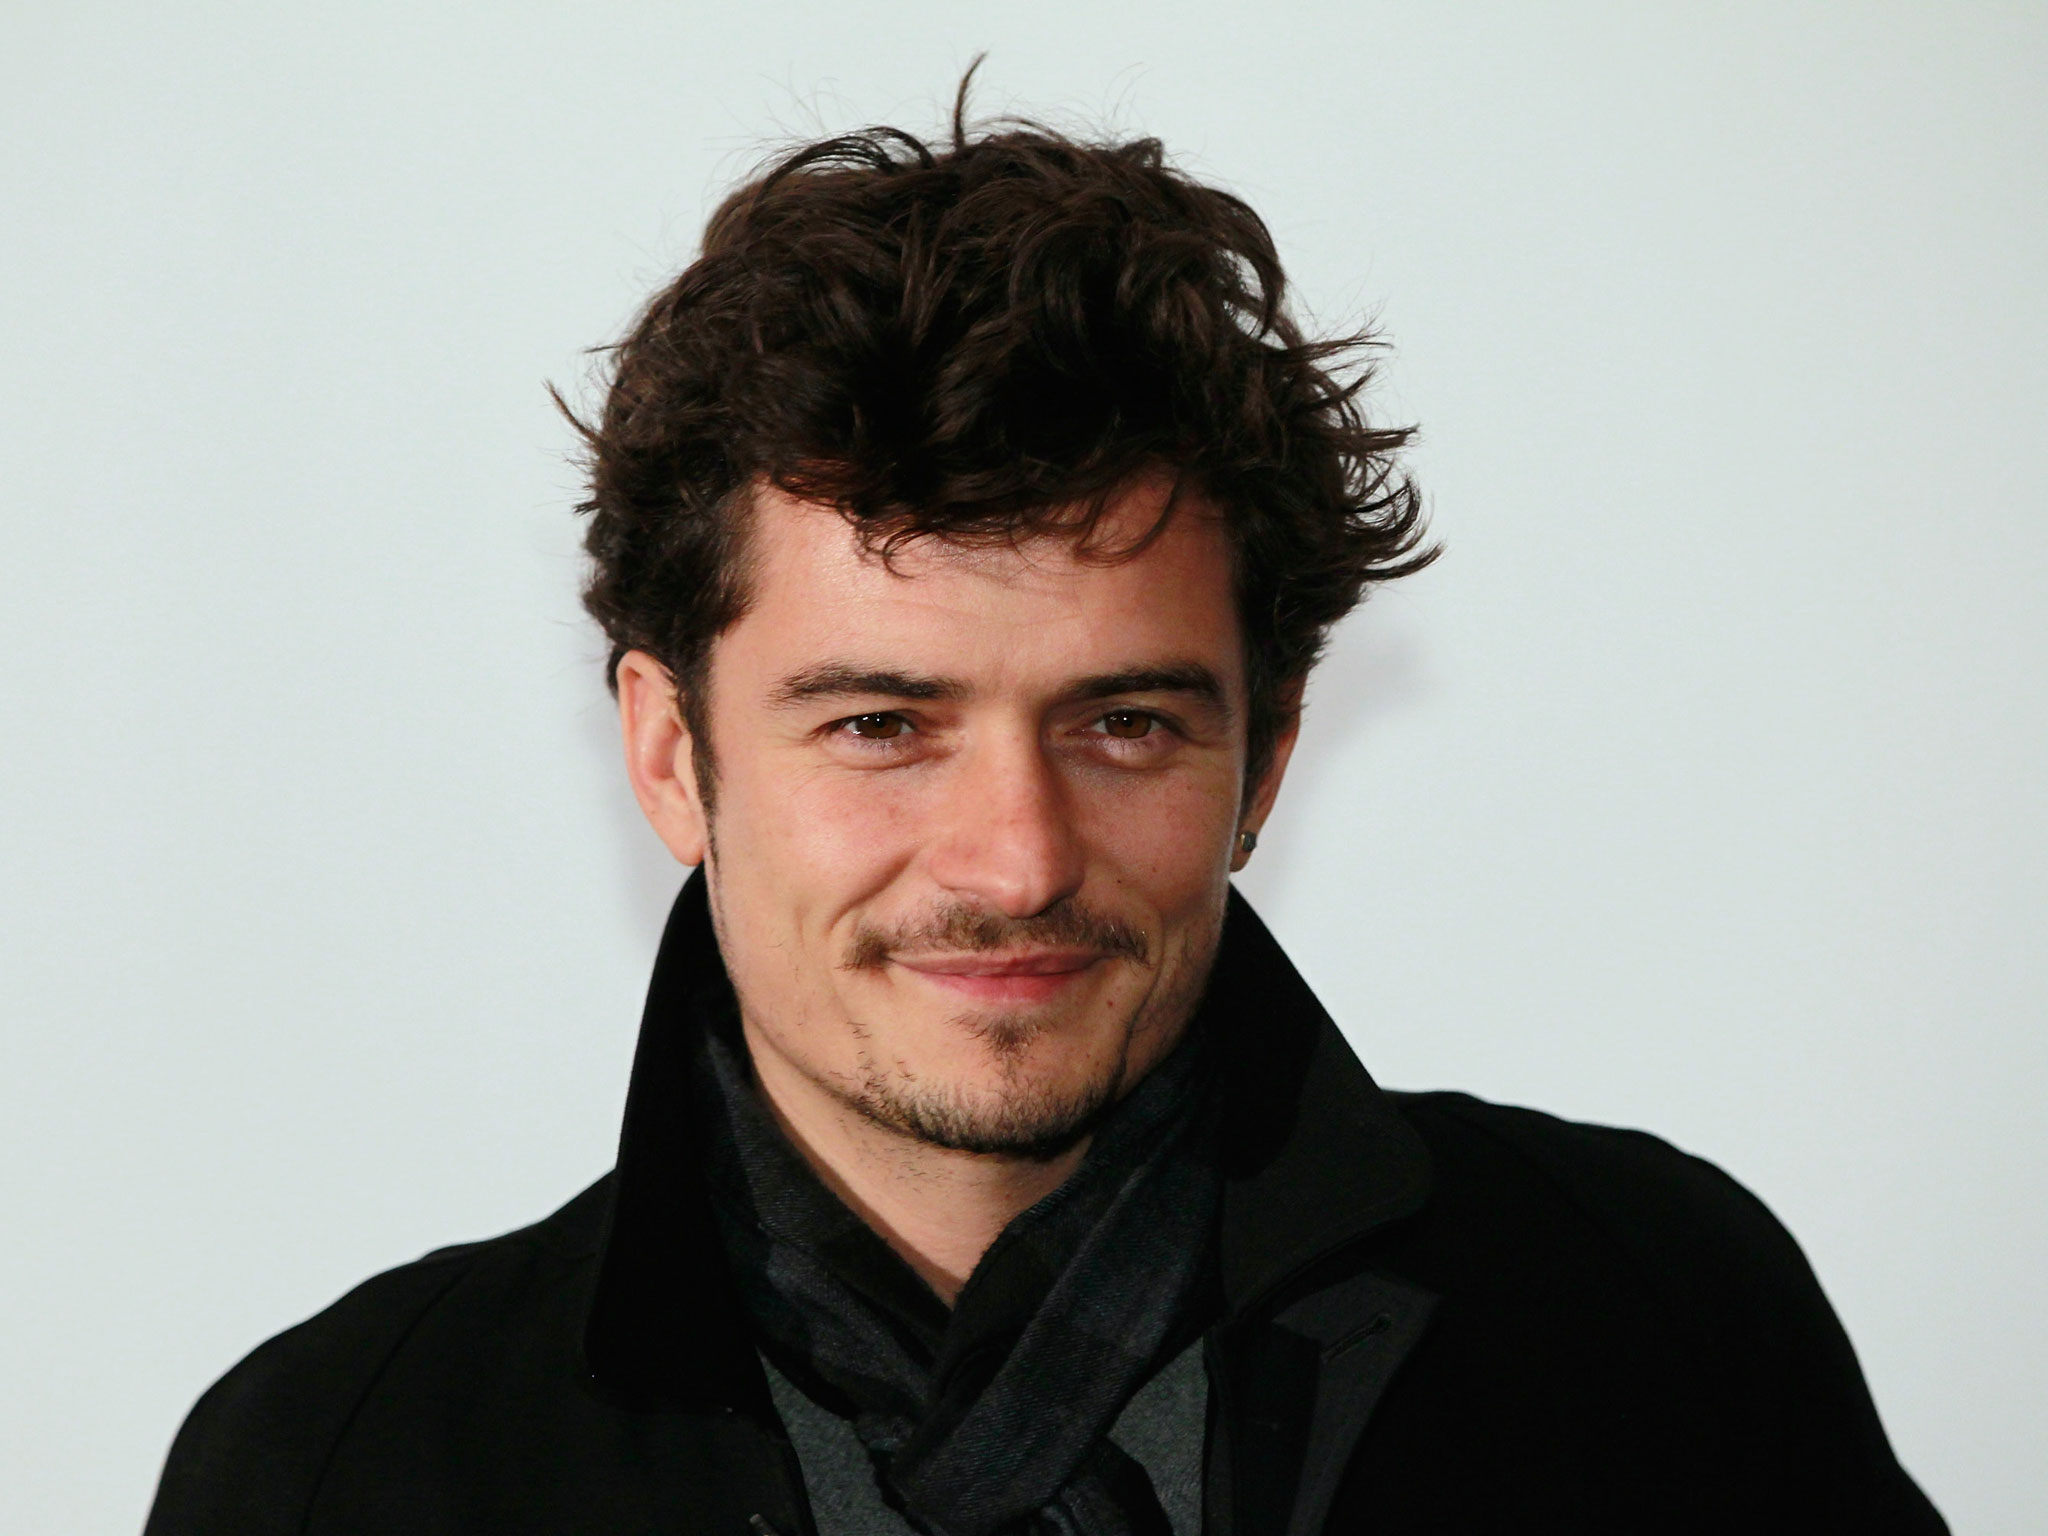 Orlando Bloom victory dances like no one's watching following alleged fight with Justin Bieber 'over Miranda Kerr' - People - News - The Independent